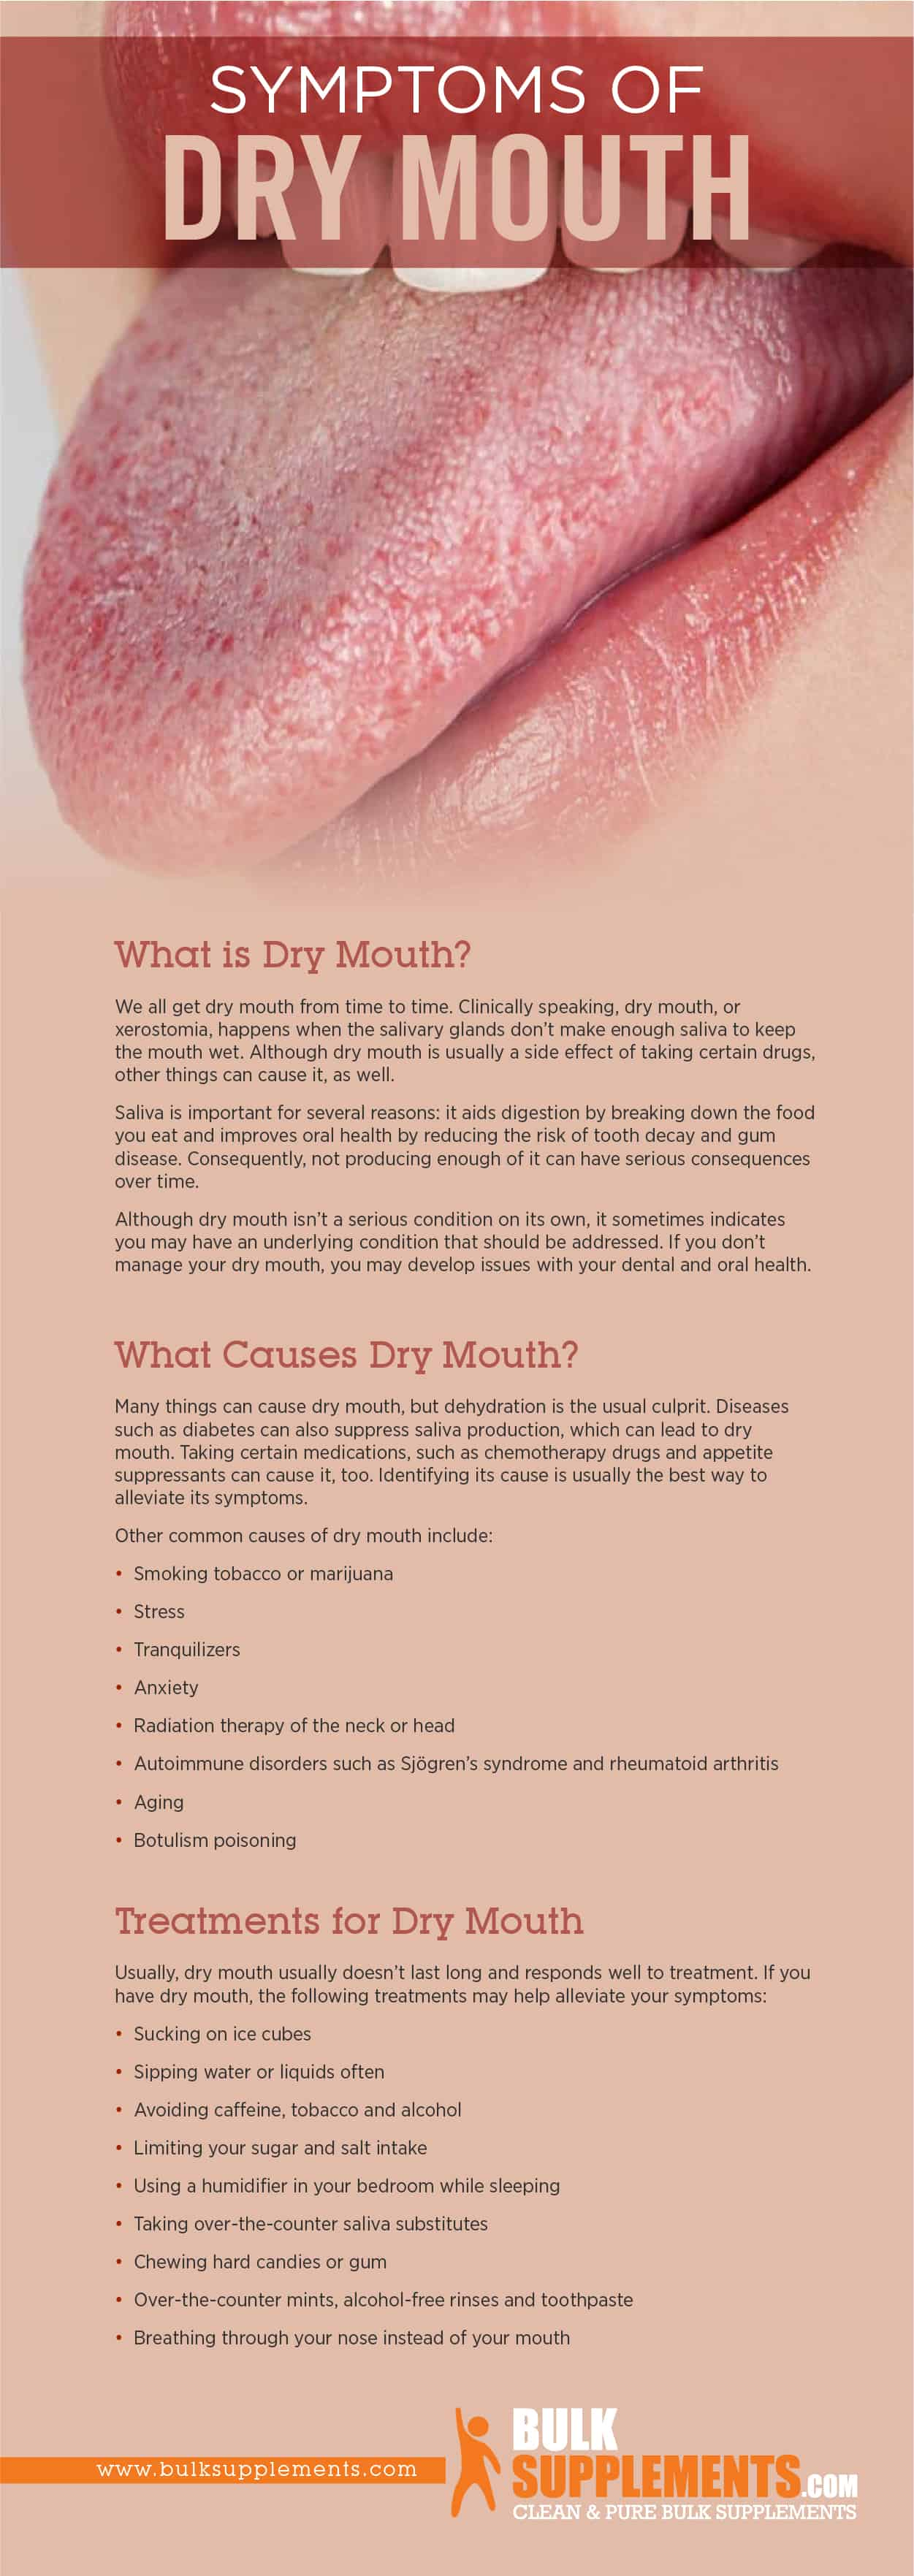 Dry Mouth Symptoms